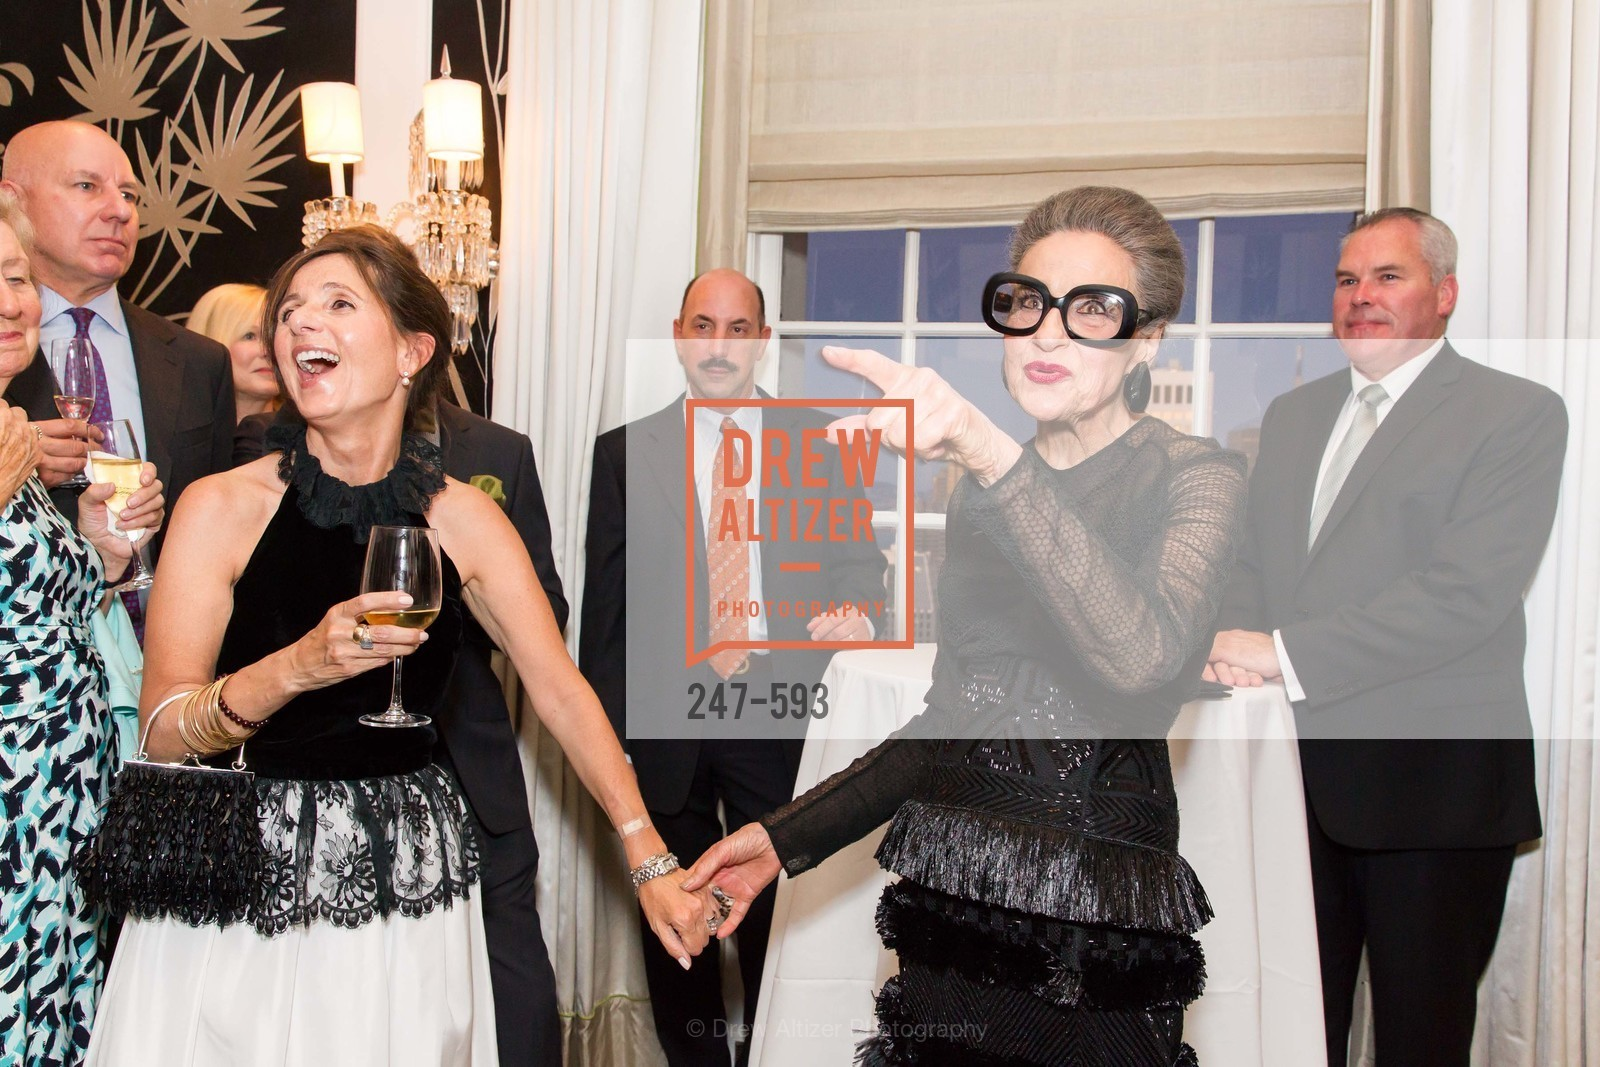 Maria Martinez, Joy Venturini Bianchi, COUTURE FOR A CAUSE, US, October 4th, 2014,Drew Altizer, Drew Altizer Photography, full-service agency, private events, San Francisco photographer, photographer california